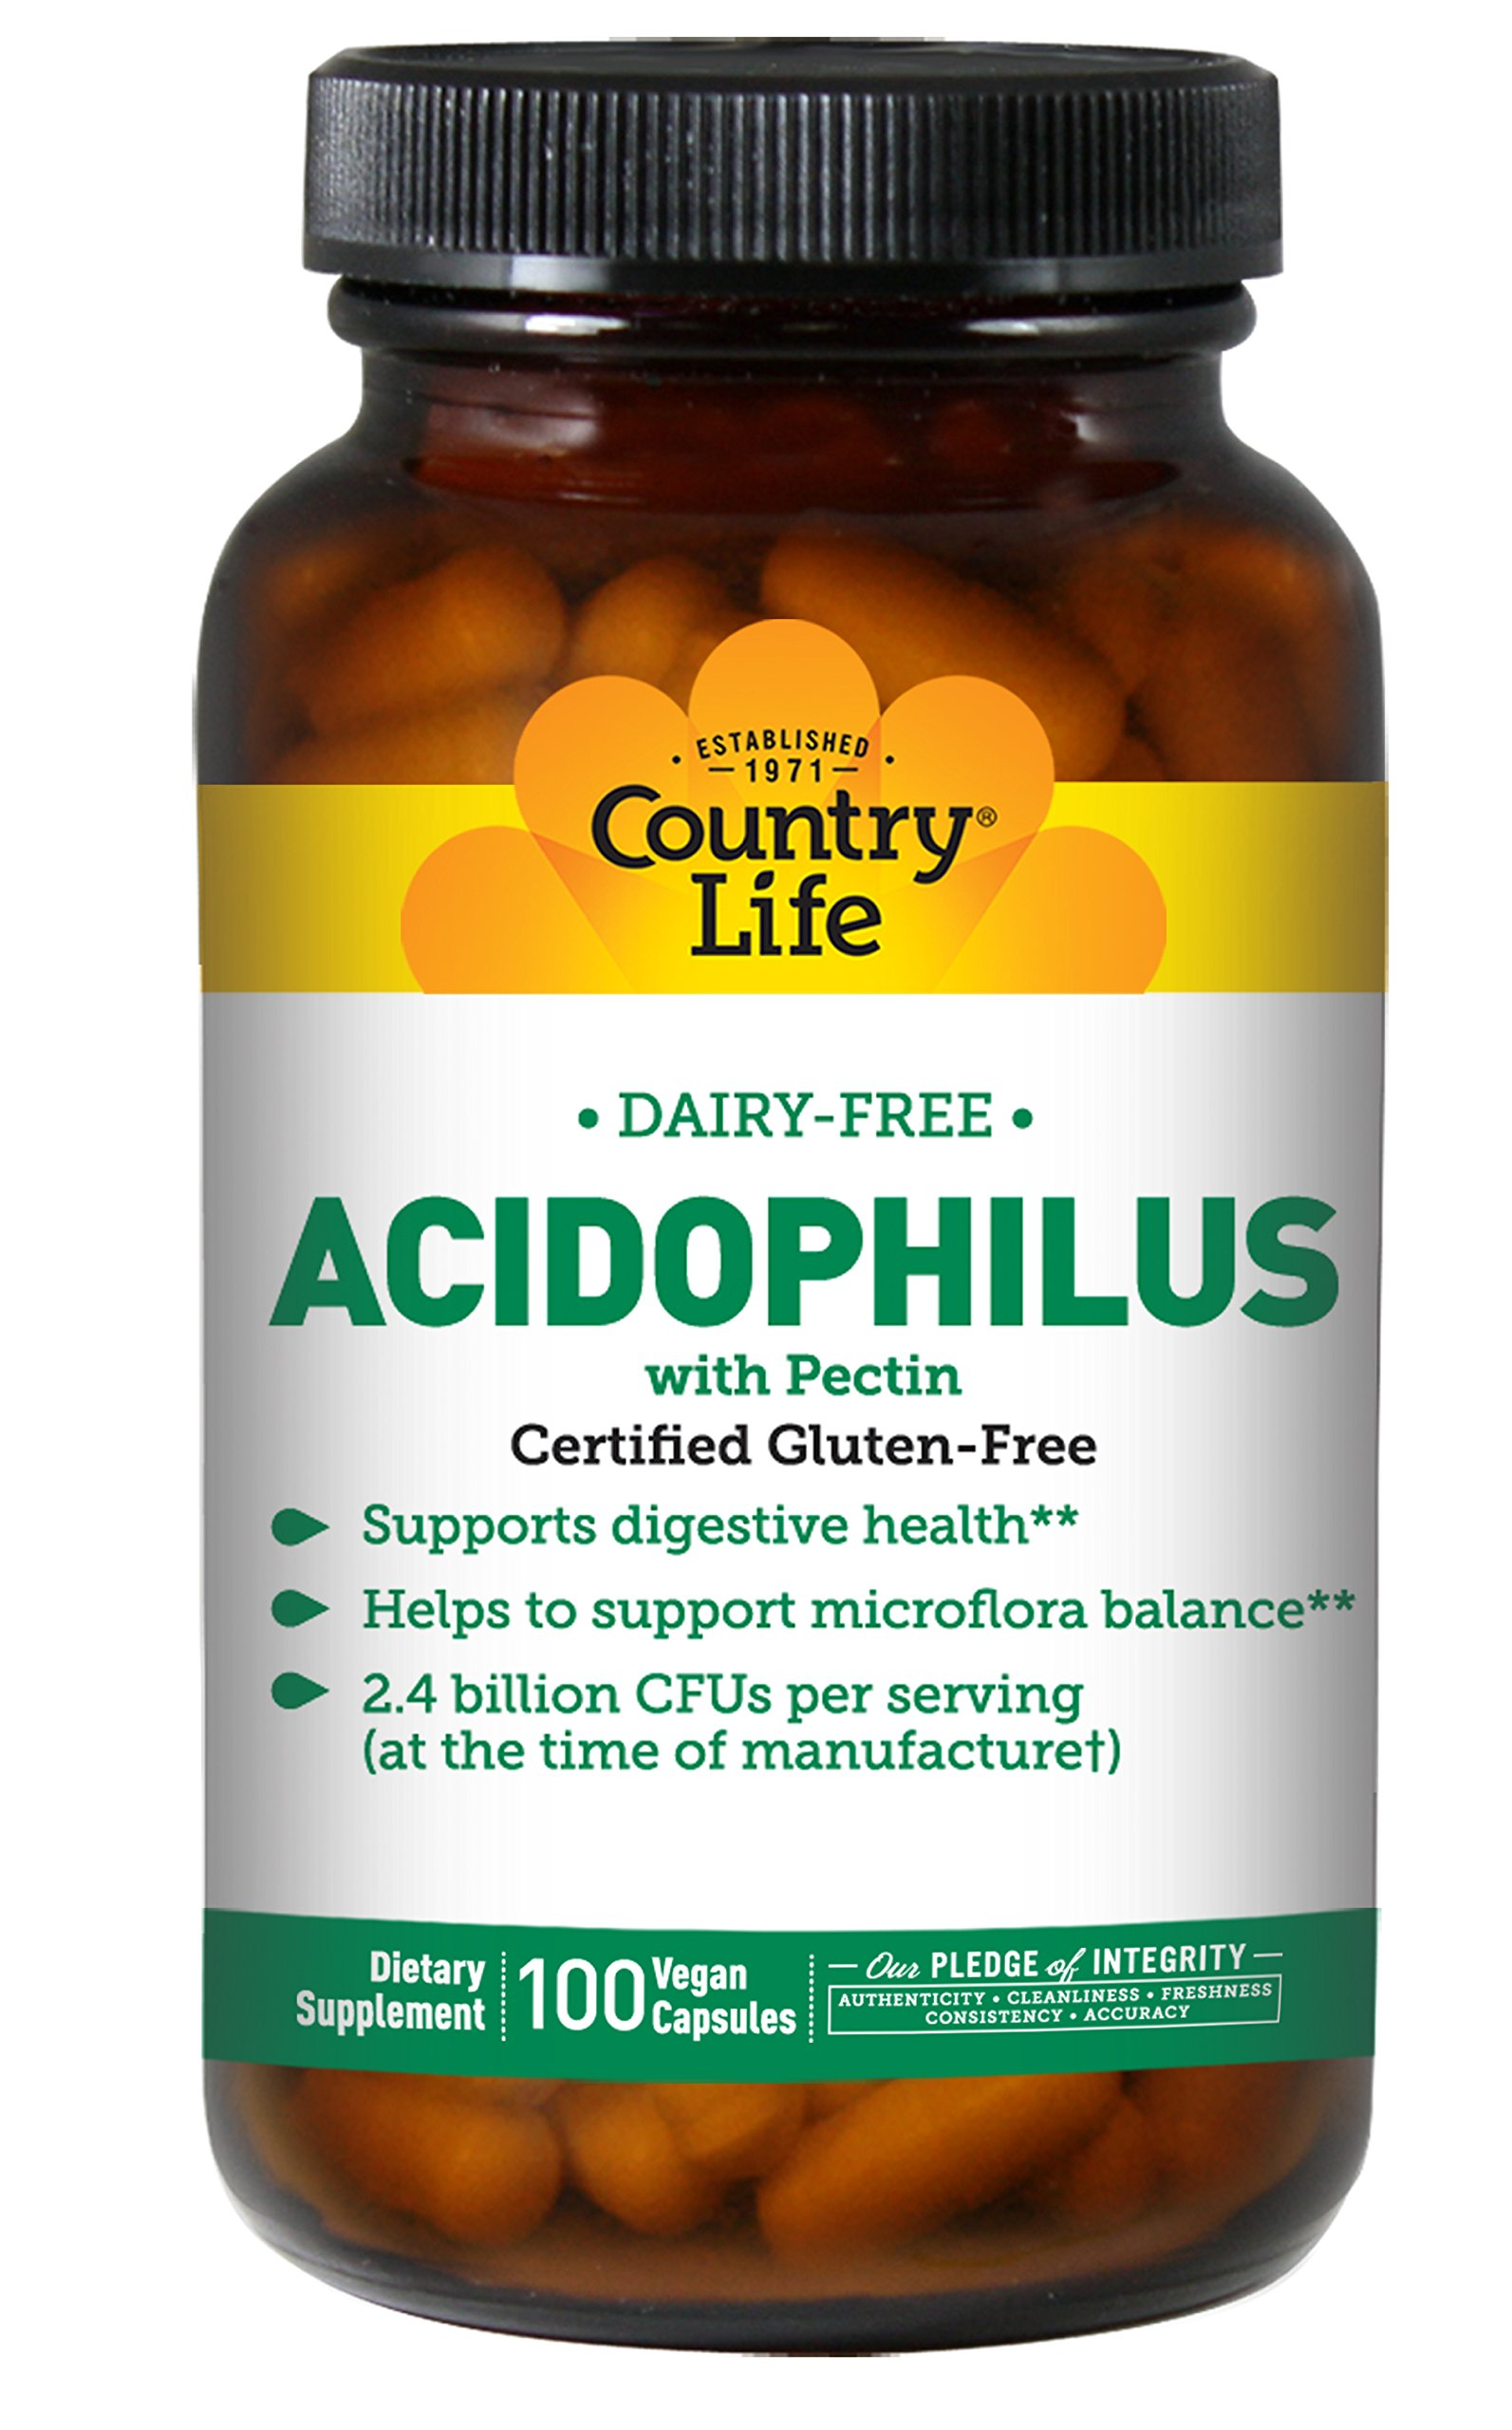 Country Life - Natural Dairy-Free Acidophilus with Pectin - 100 Vegan Capsules